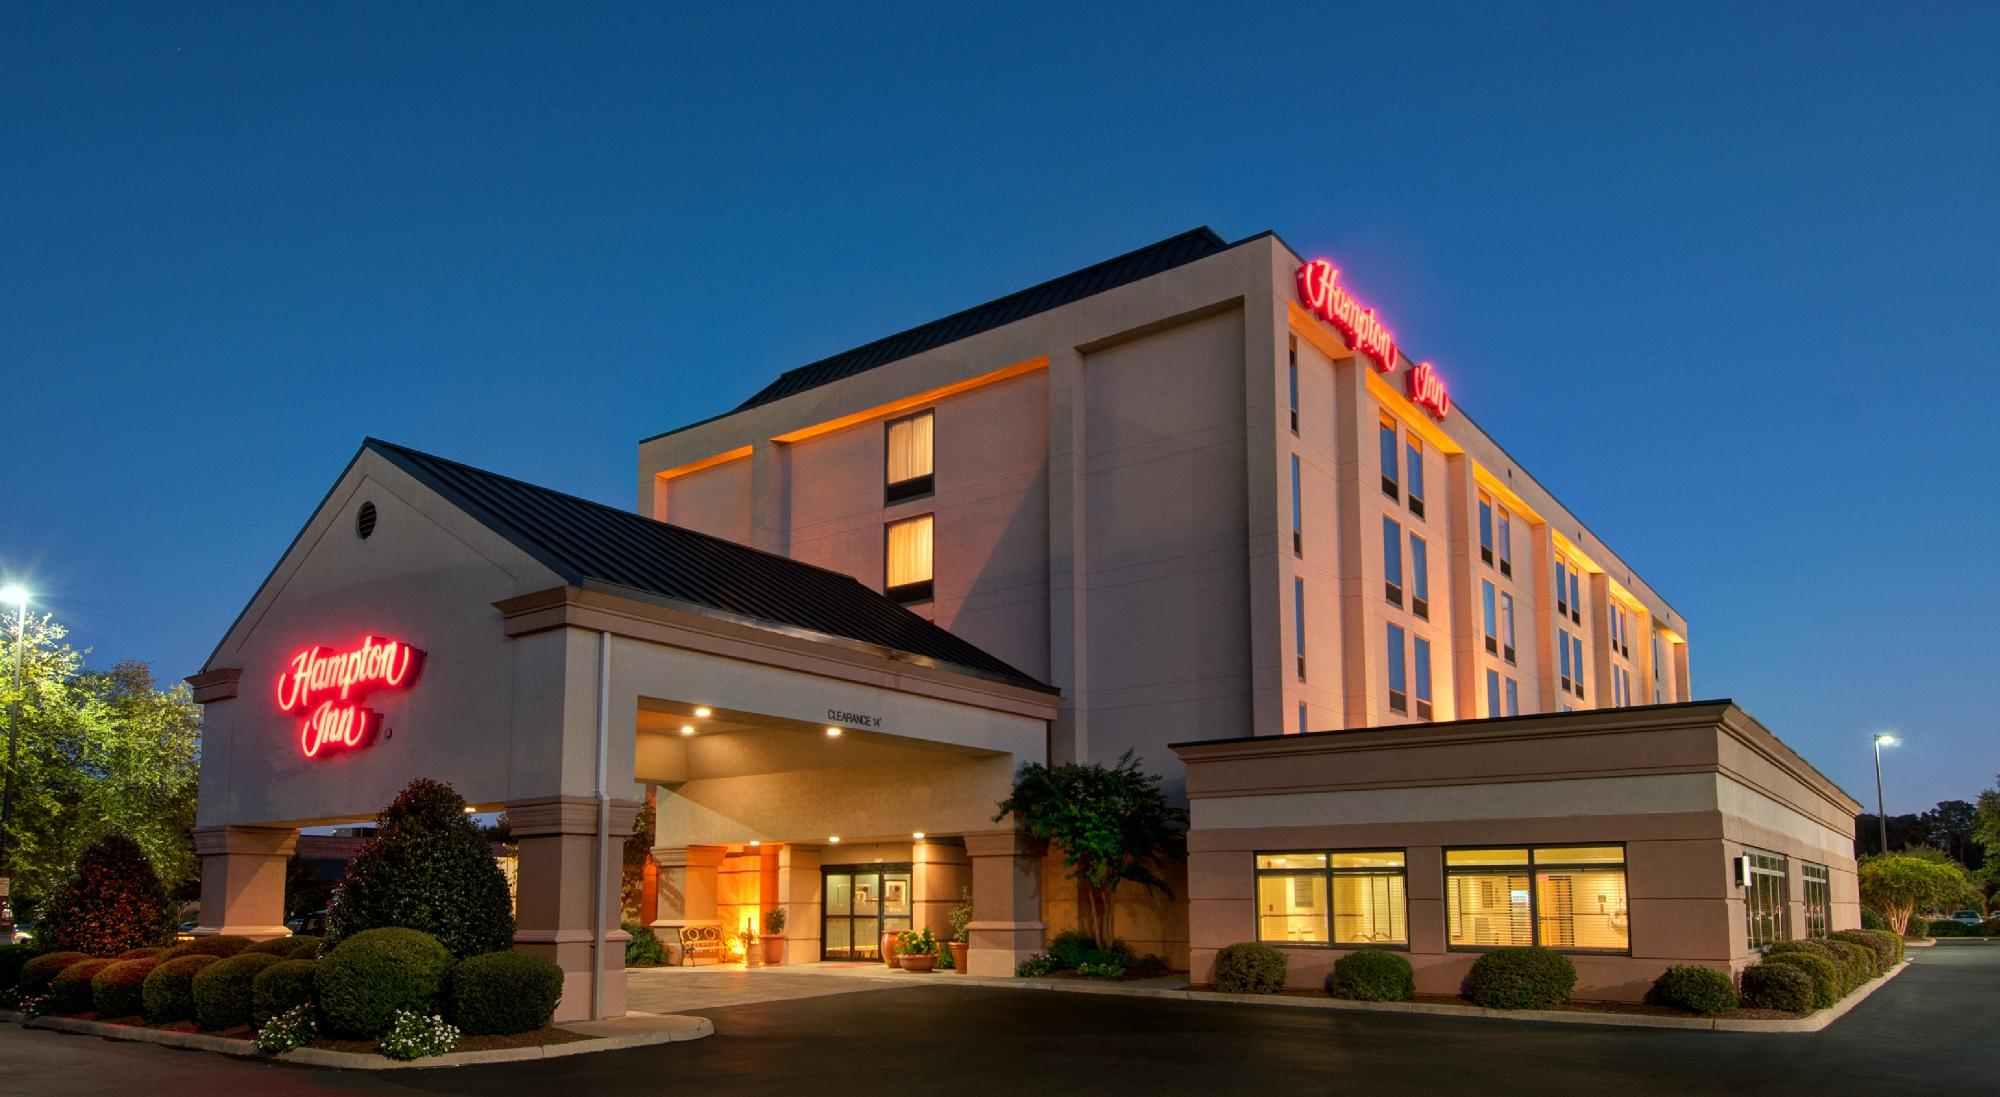 Hampton Inn Newport News-Yorktown